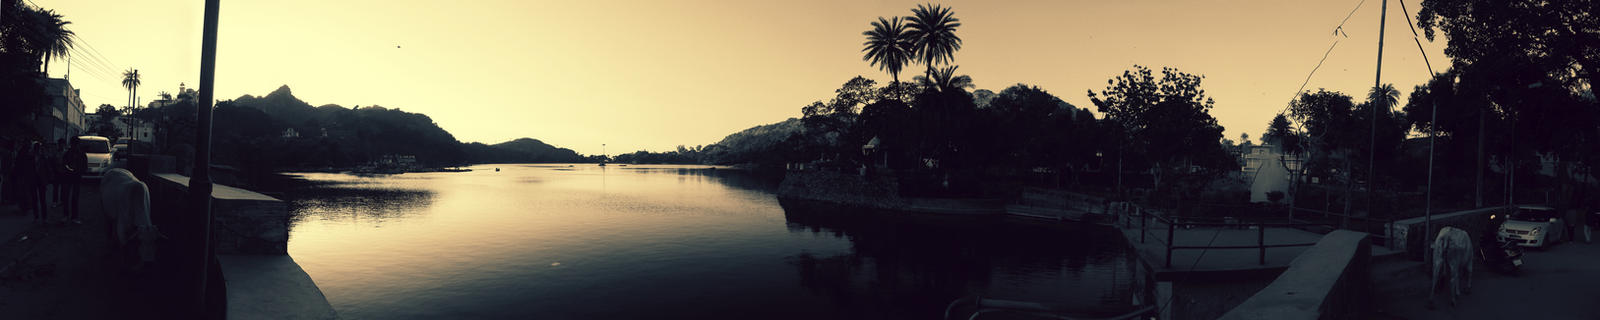 Nakki Lake, Mount Abu by faithlessdream